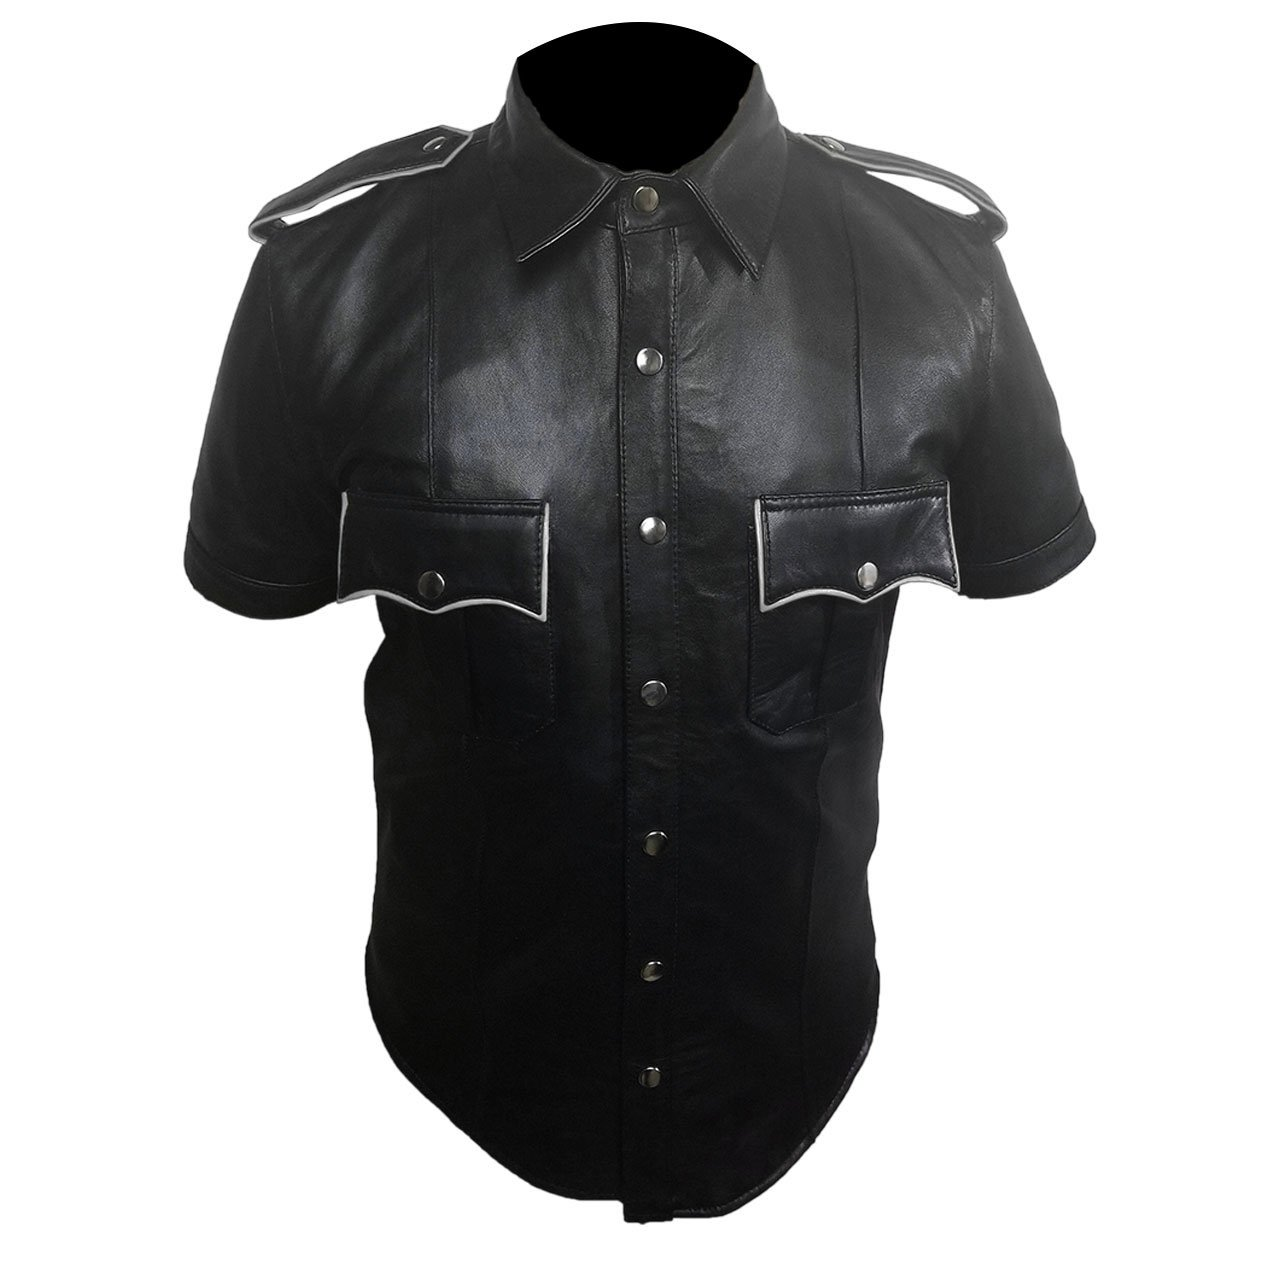 Mens Black Sheep or Cow Leather Police Real Uniform Shirt with White Piping BLUF Gay